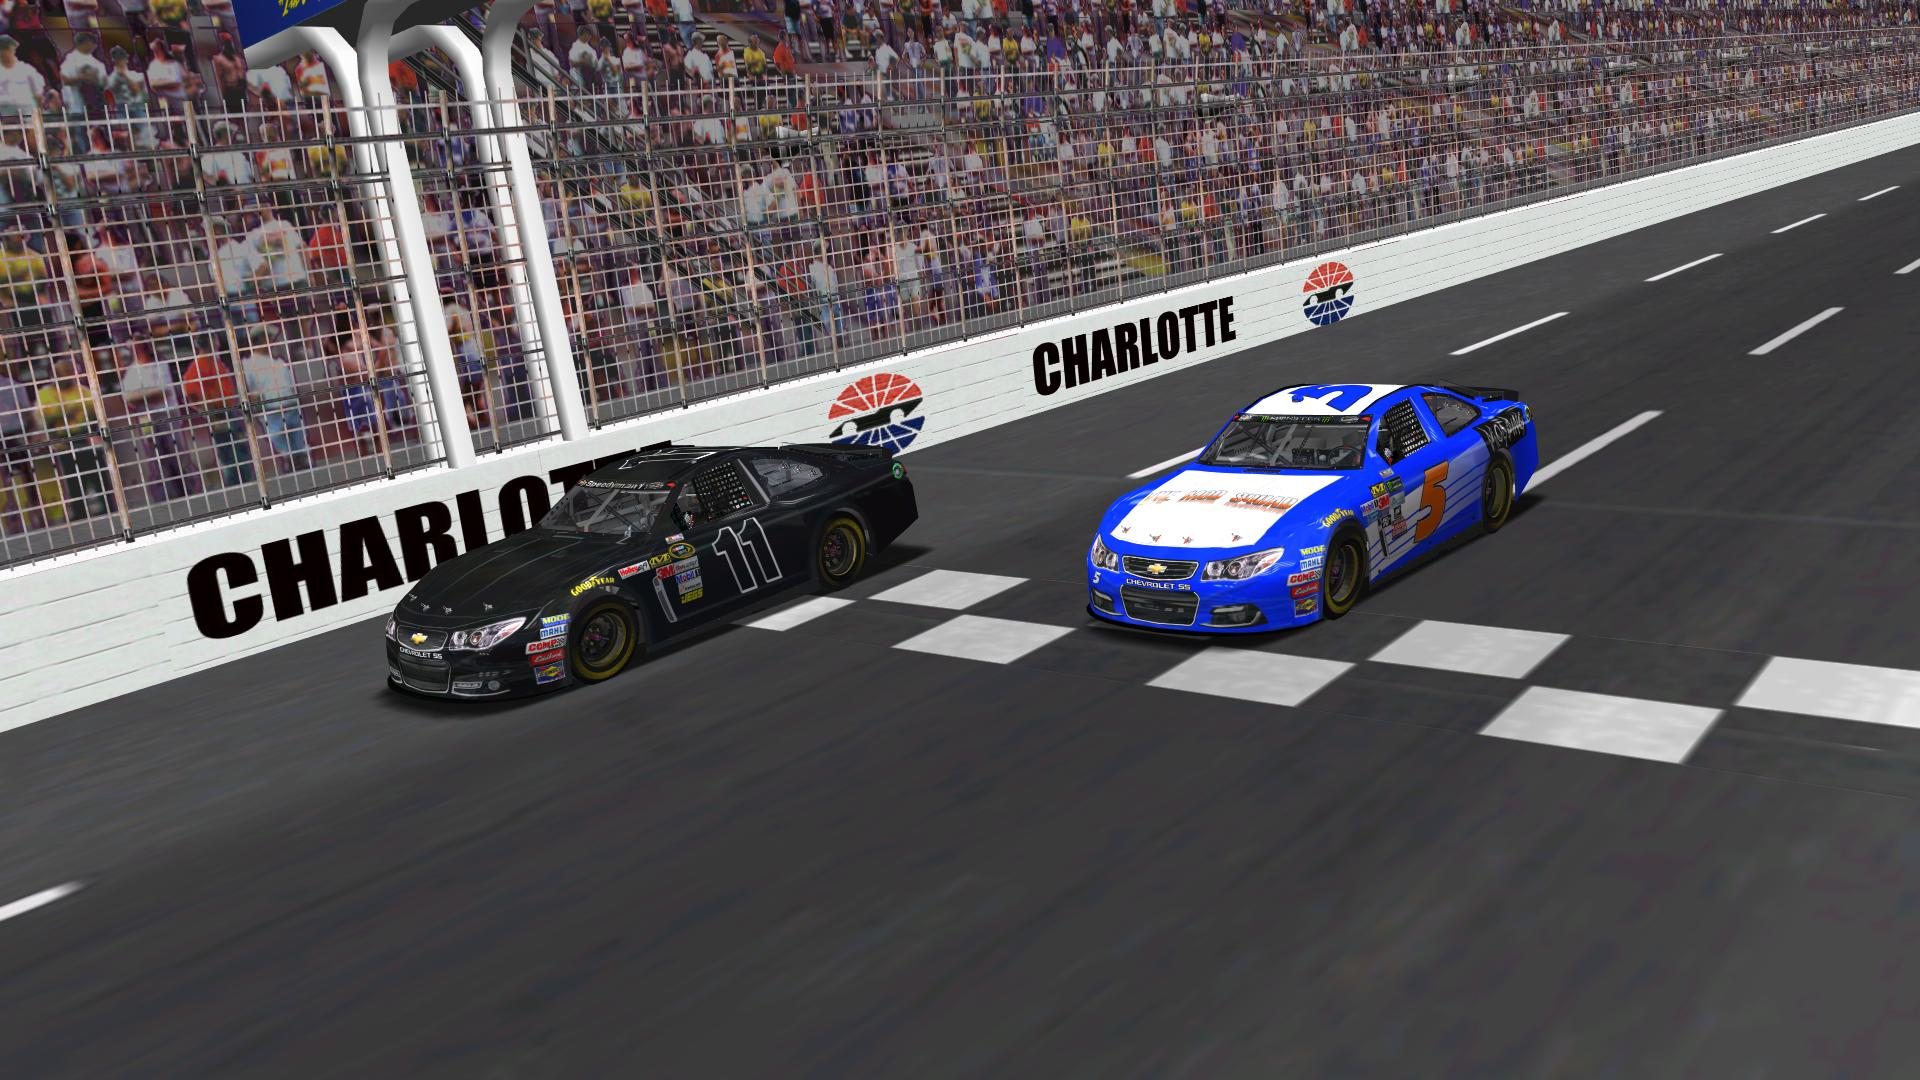 Speedyman11 races with Donaldson at Charlotte Motor Speedway. (Credit: DusterLag / HeatFinder)